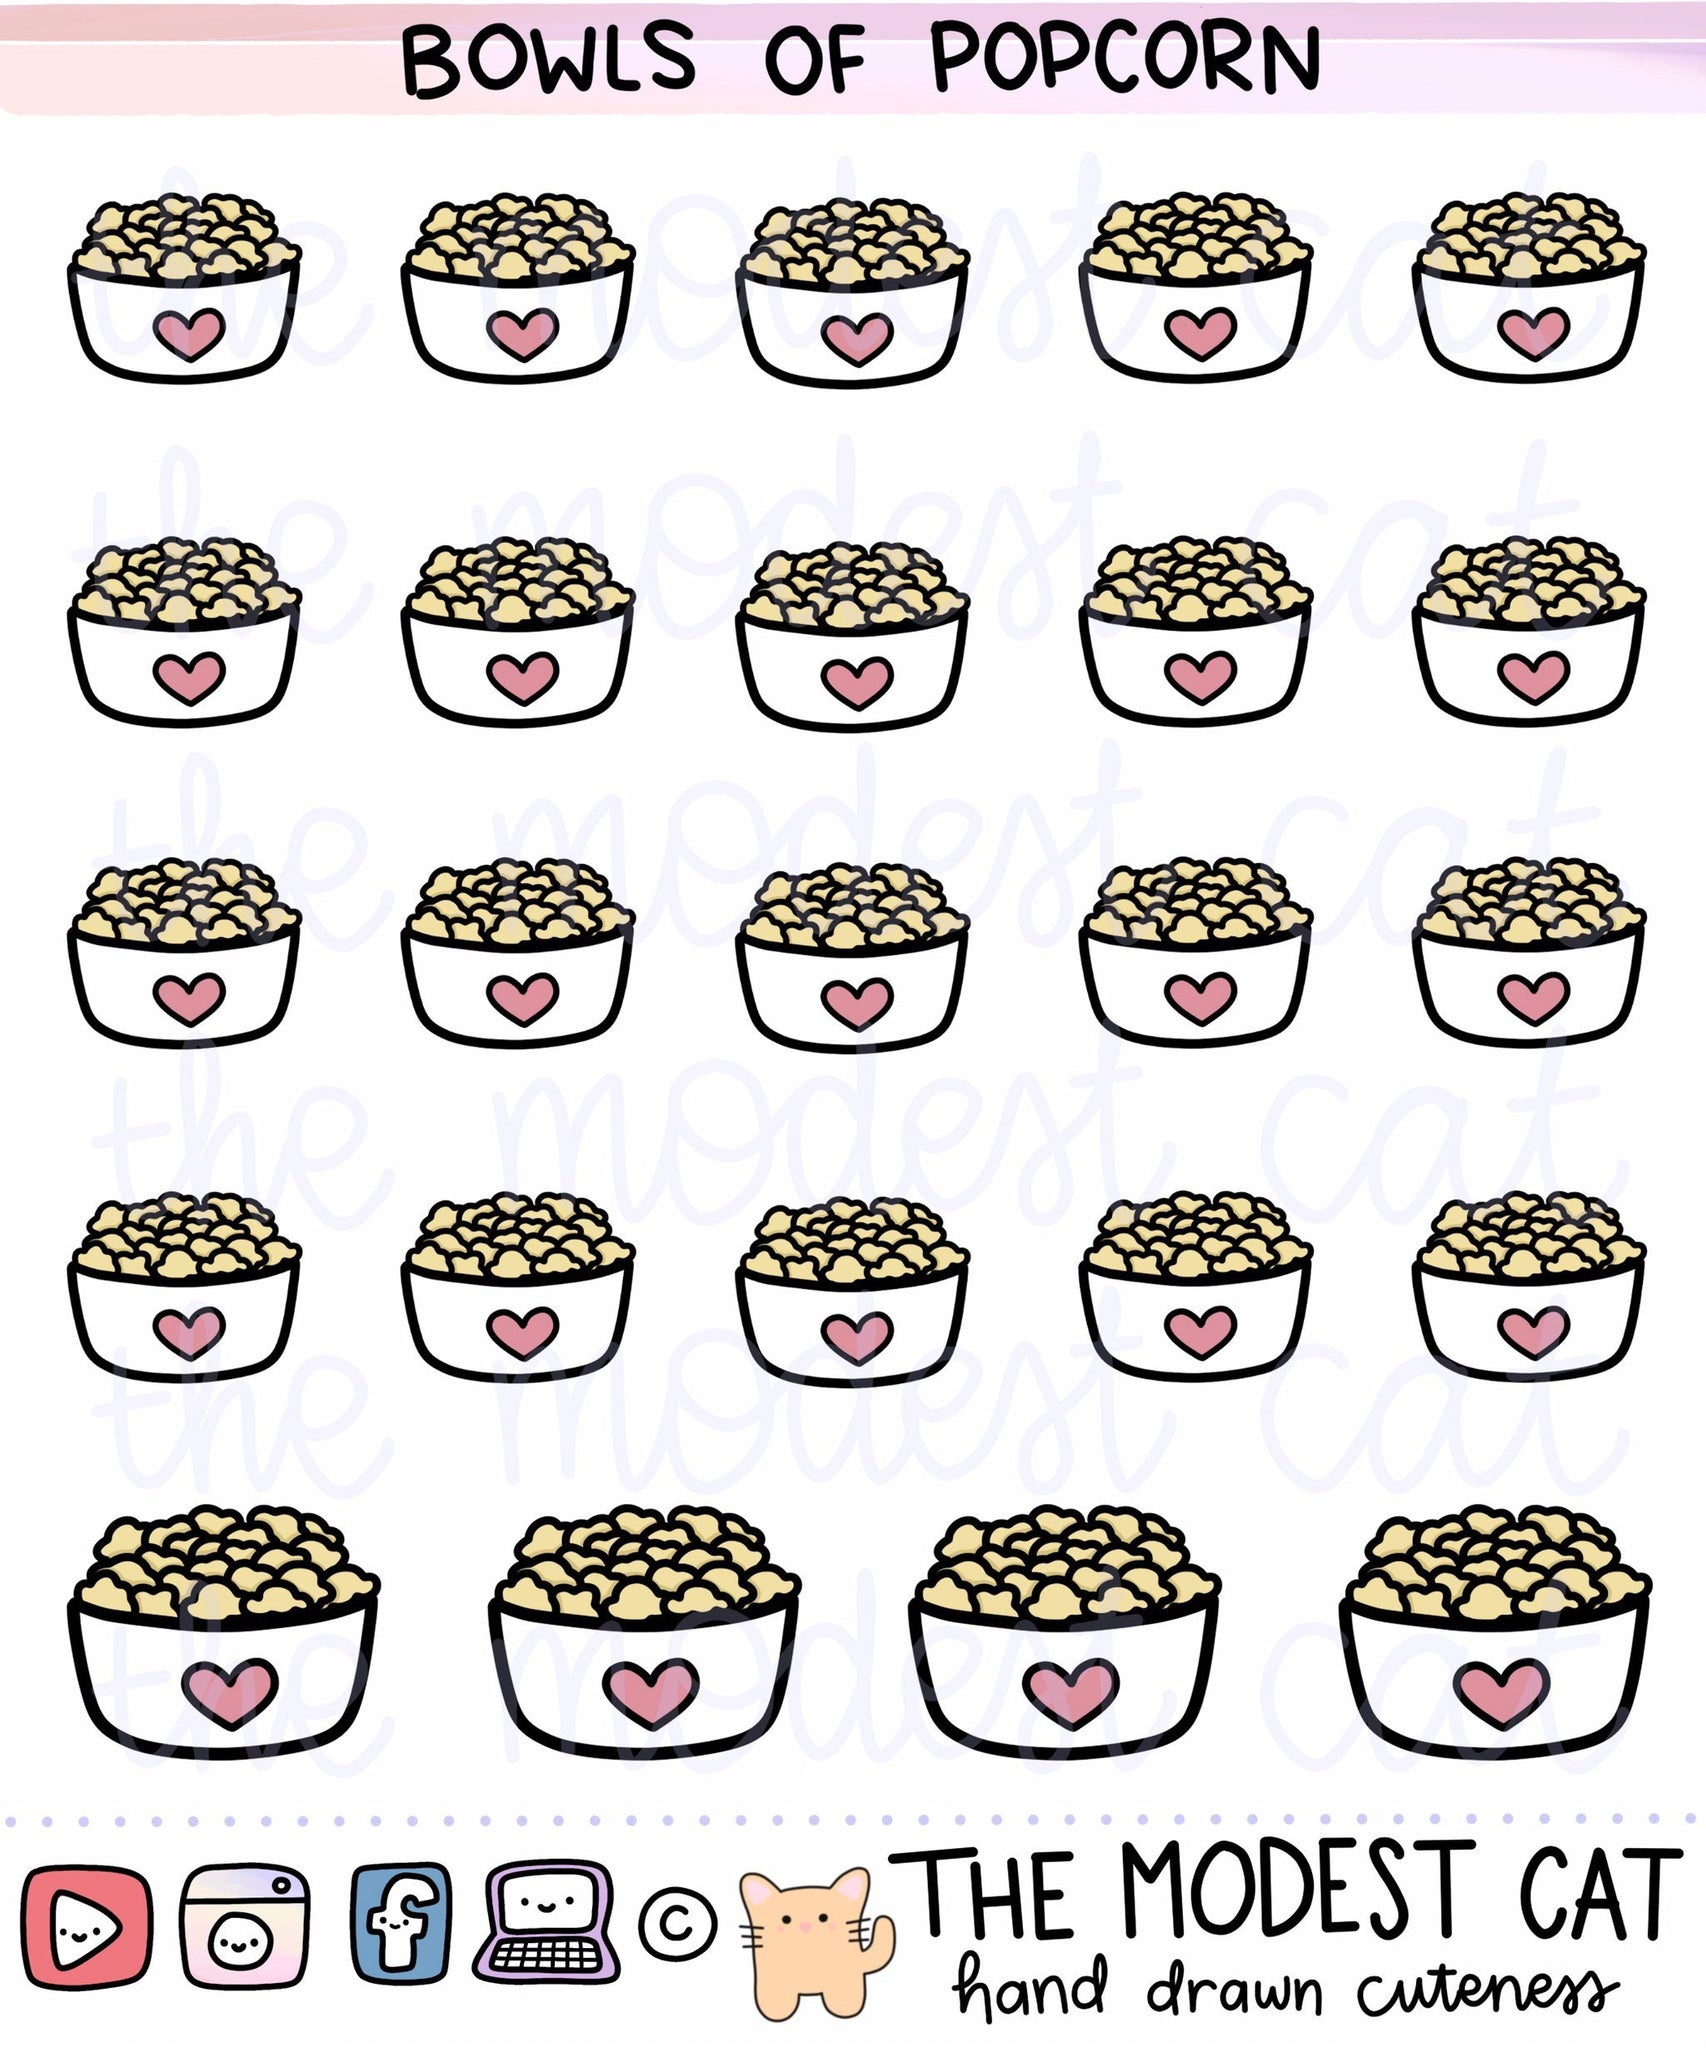 Bowls of Popcorn deco stickers (R82)